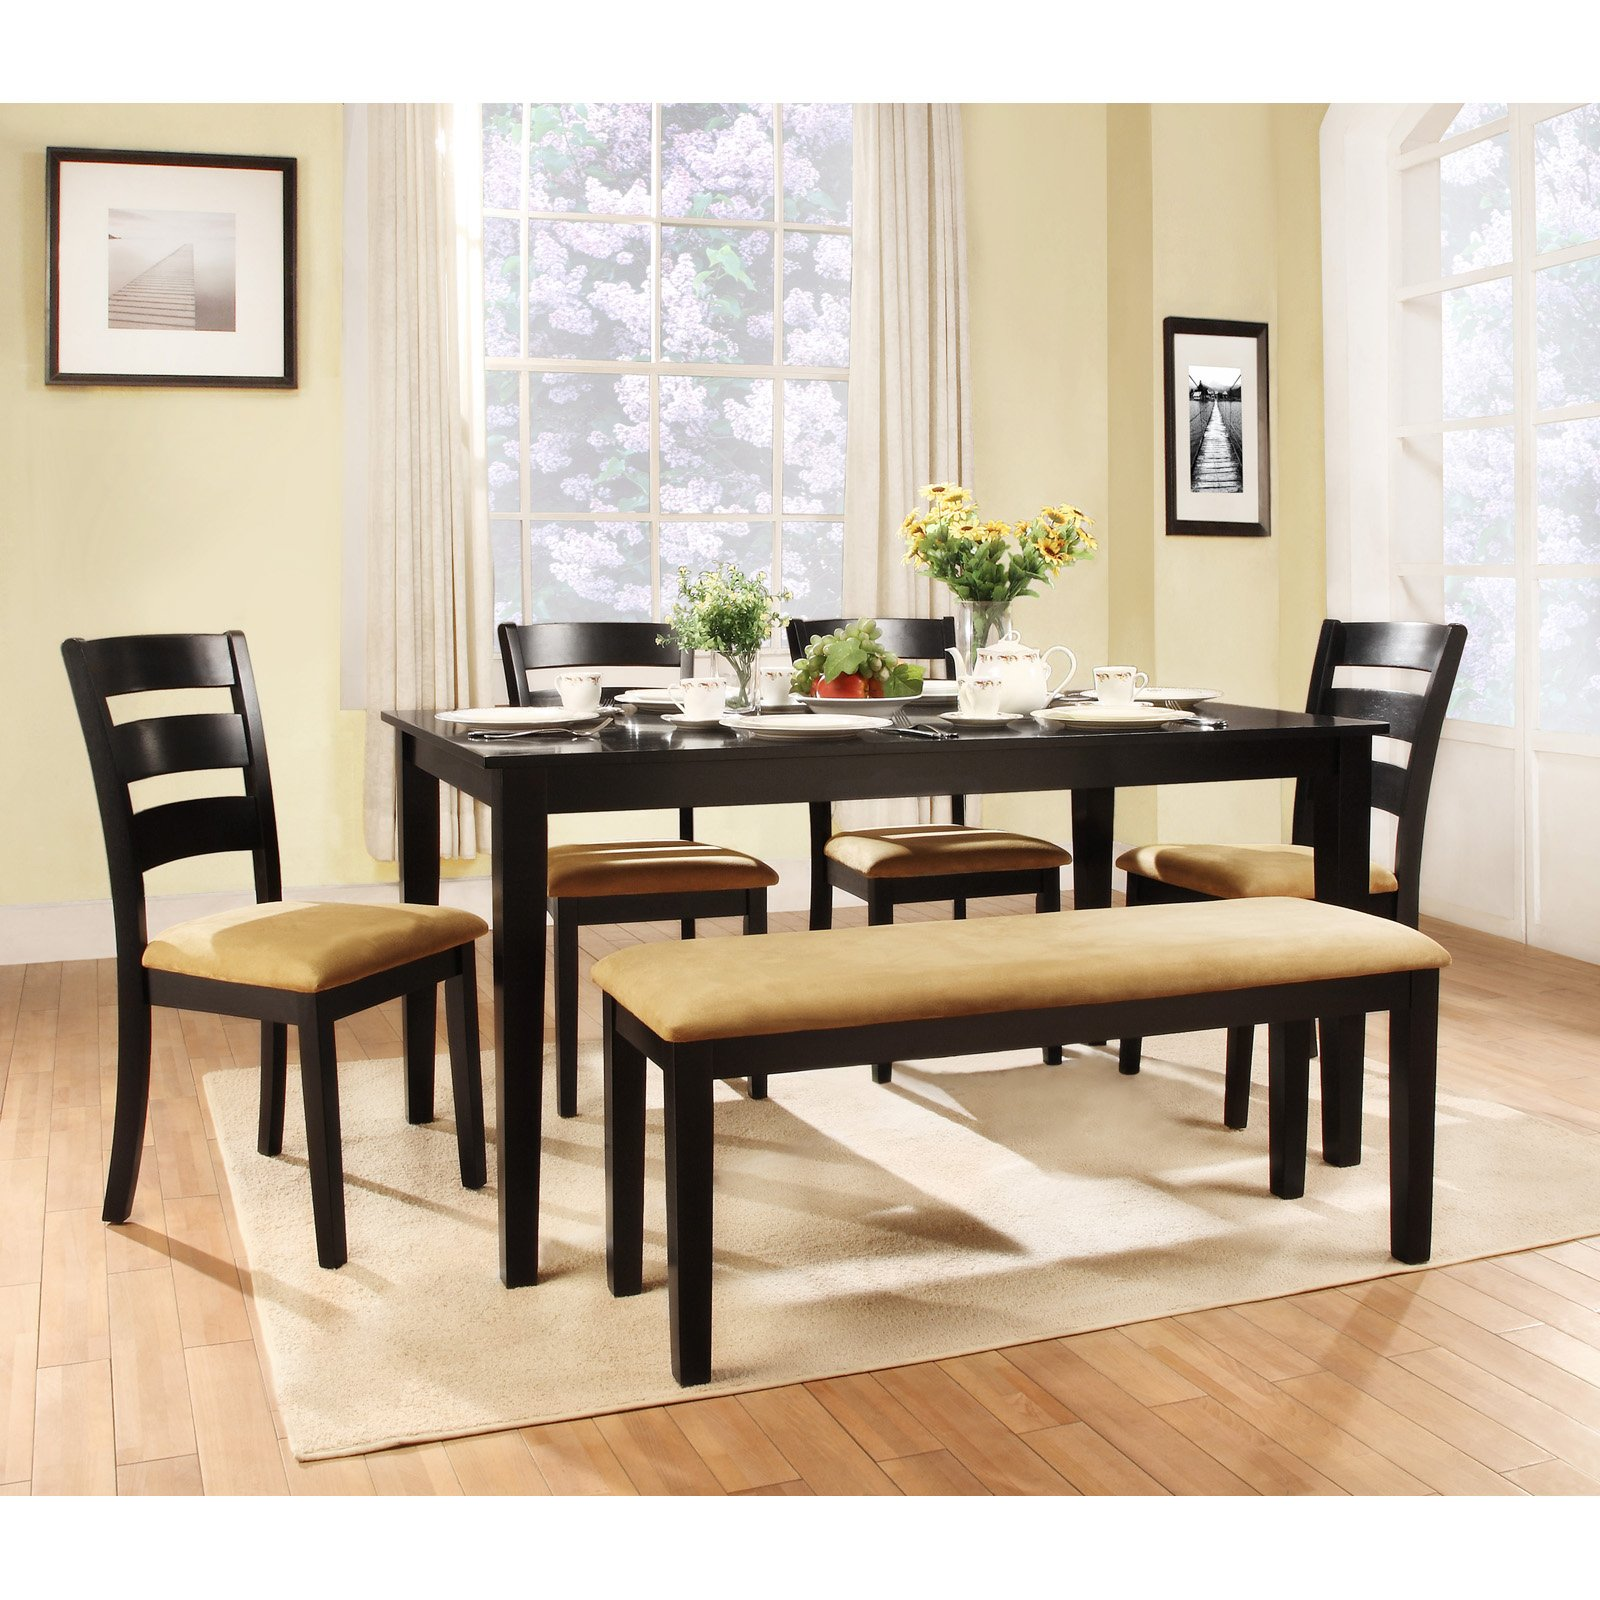 Dining Room Inexpensive Dining Room Table With Bench And: Modern Bench Style Dining Table Set Ideas